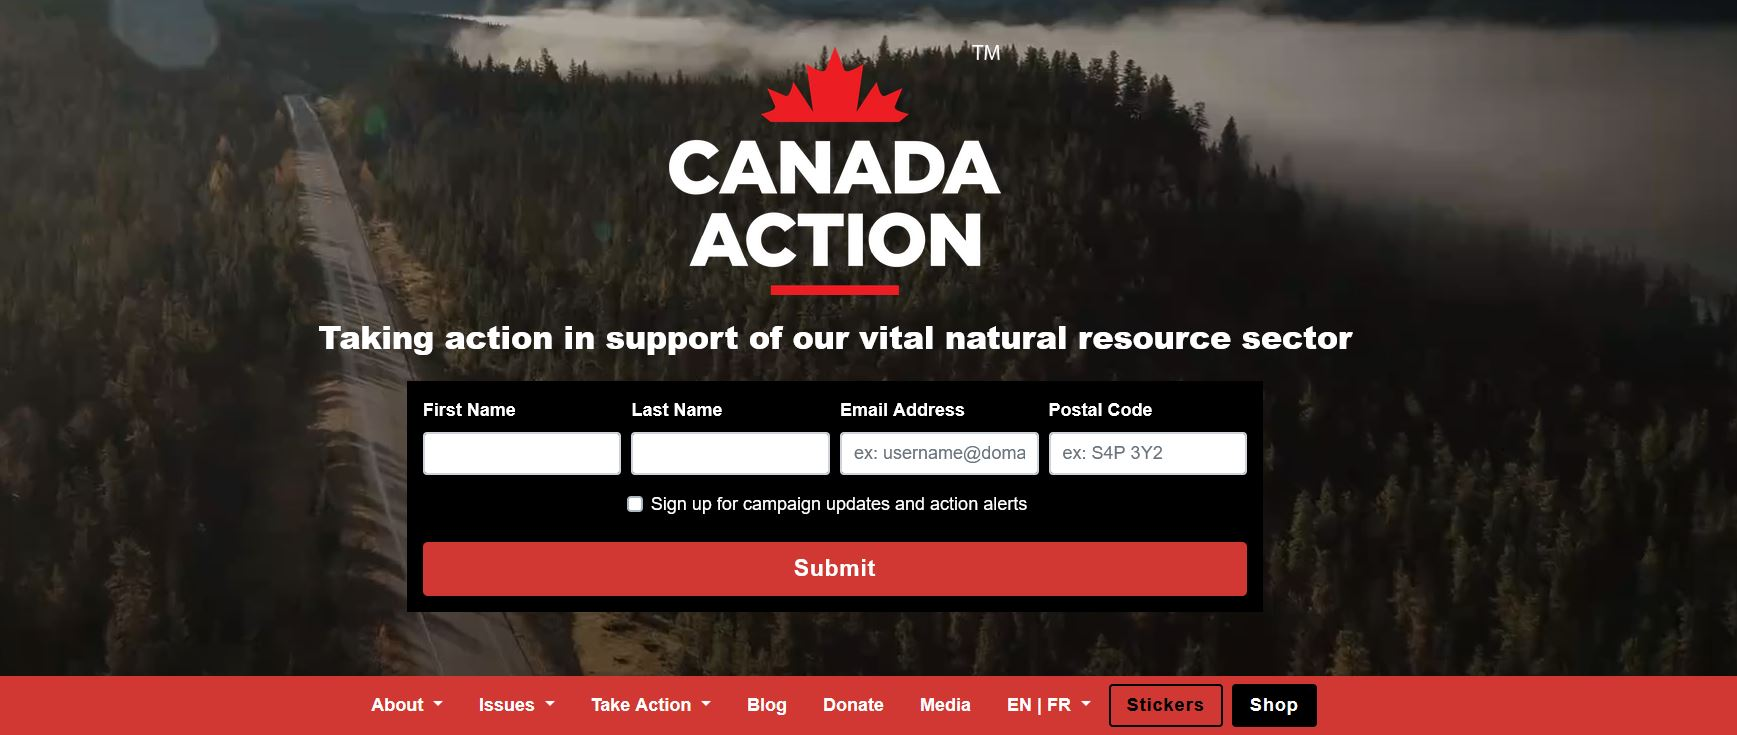 Canada Action Homepage Snip